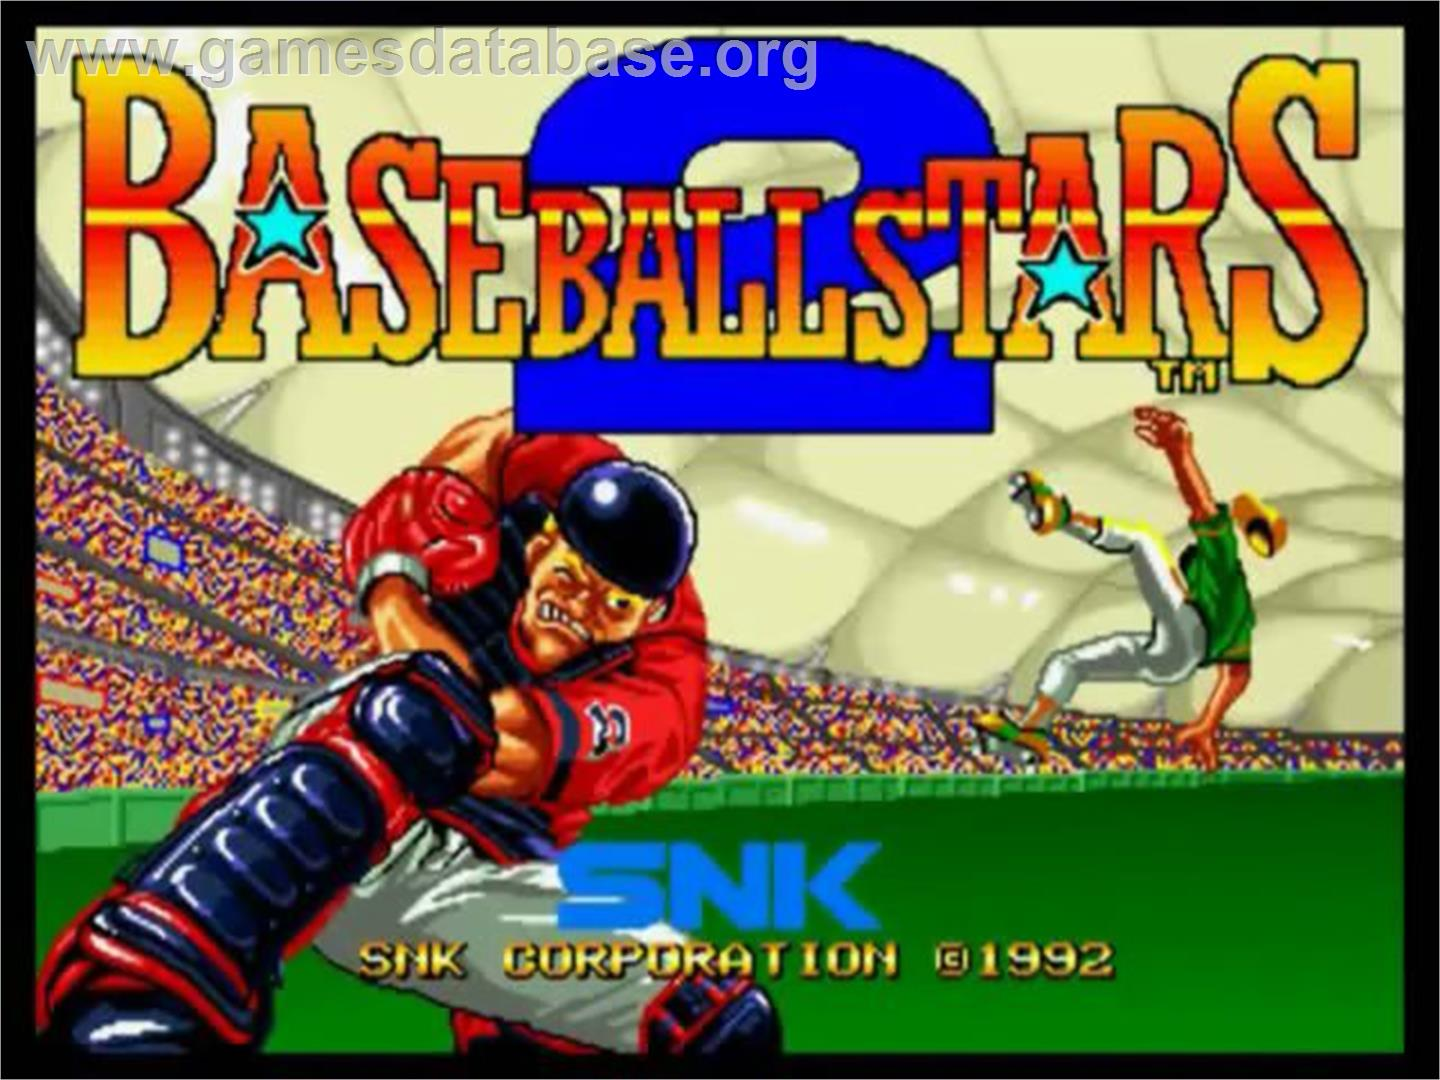 baseball stars be a champ arcade baseball stars professional video